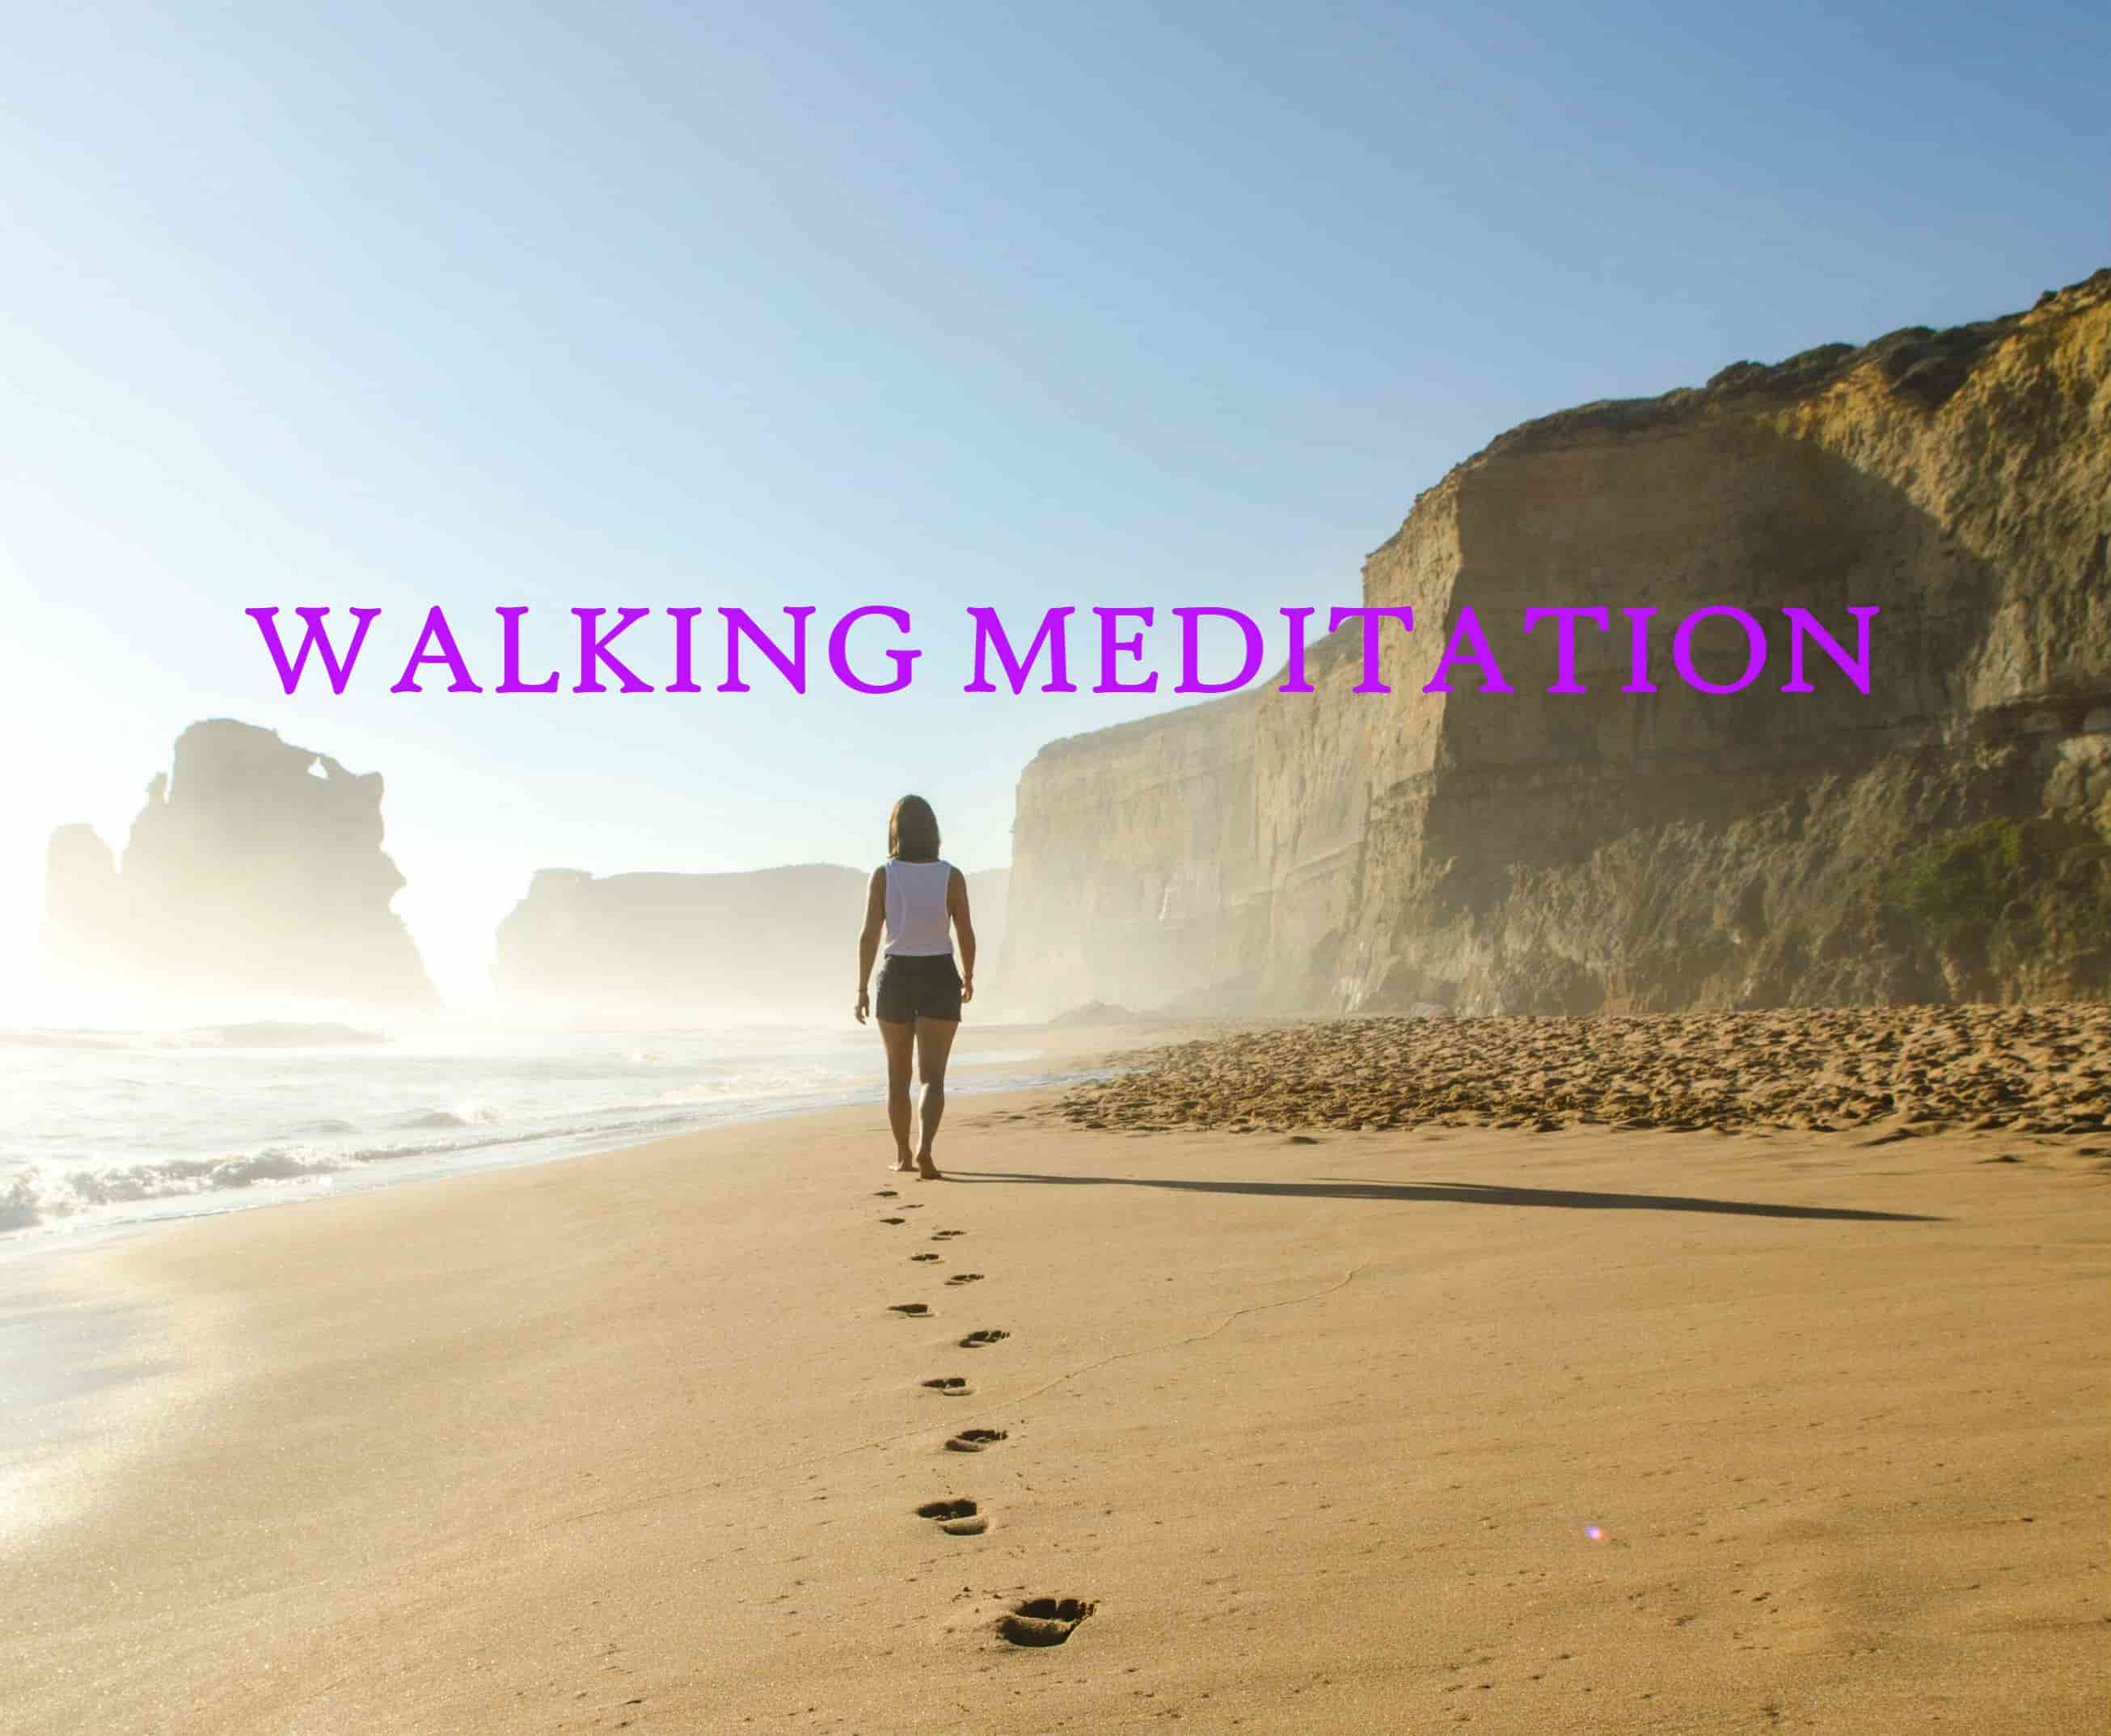 WALKING MEDITATION: What It Is And How To Practice